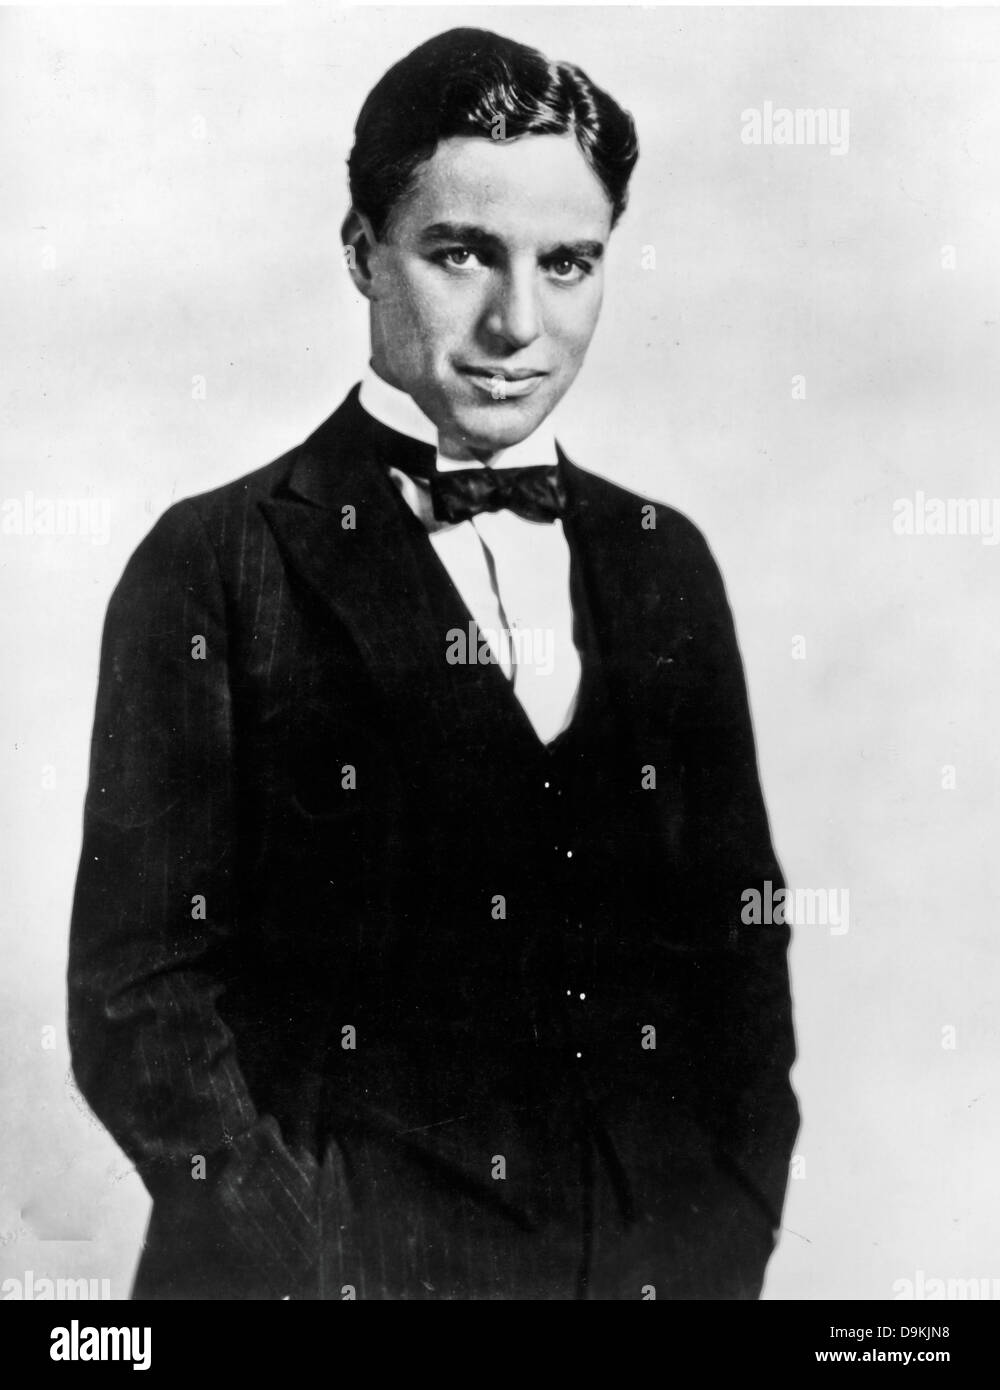 charlie chaplin Stock Photo